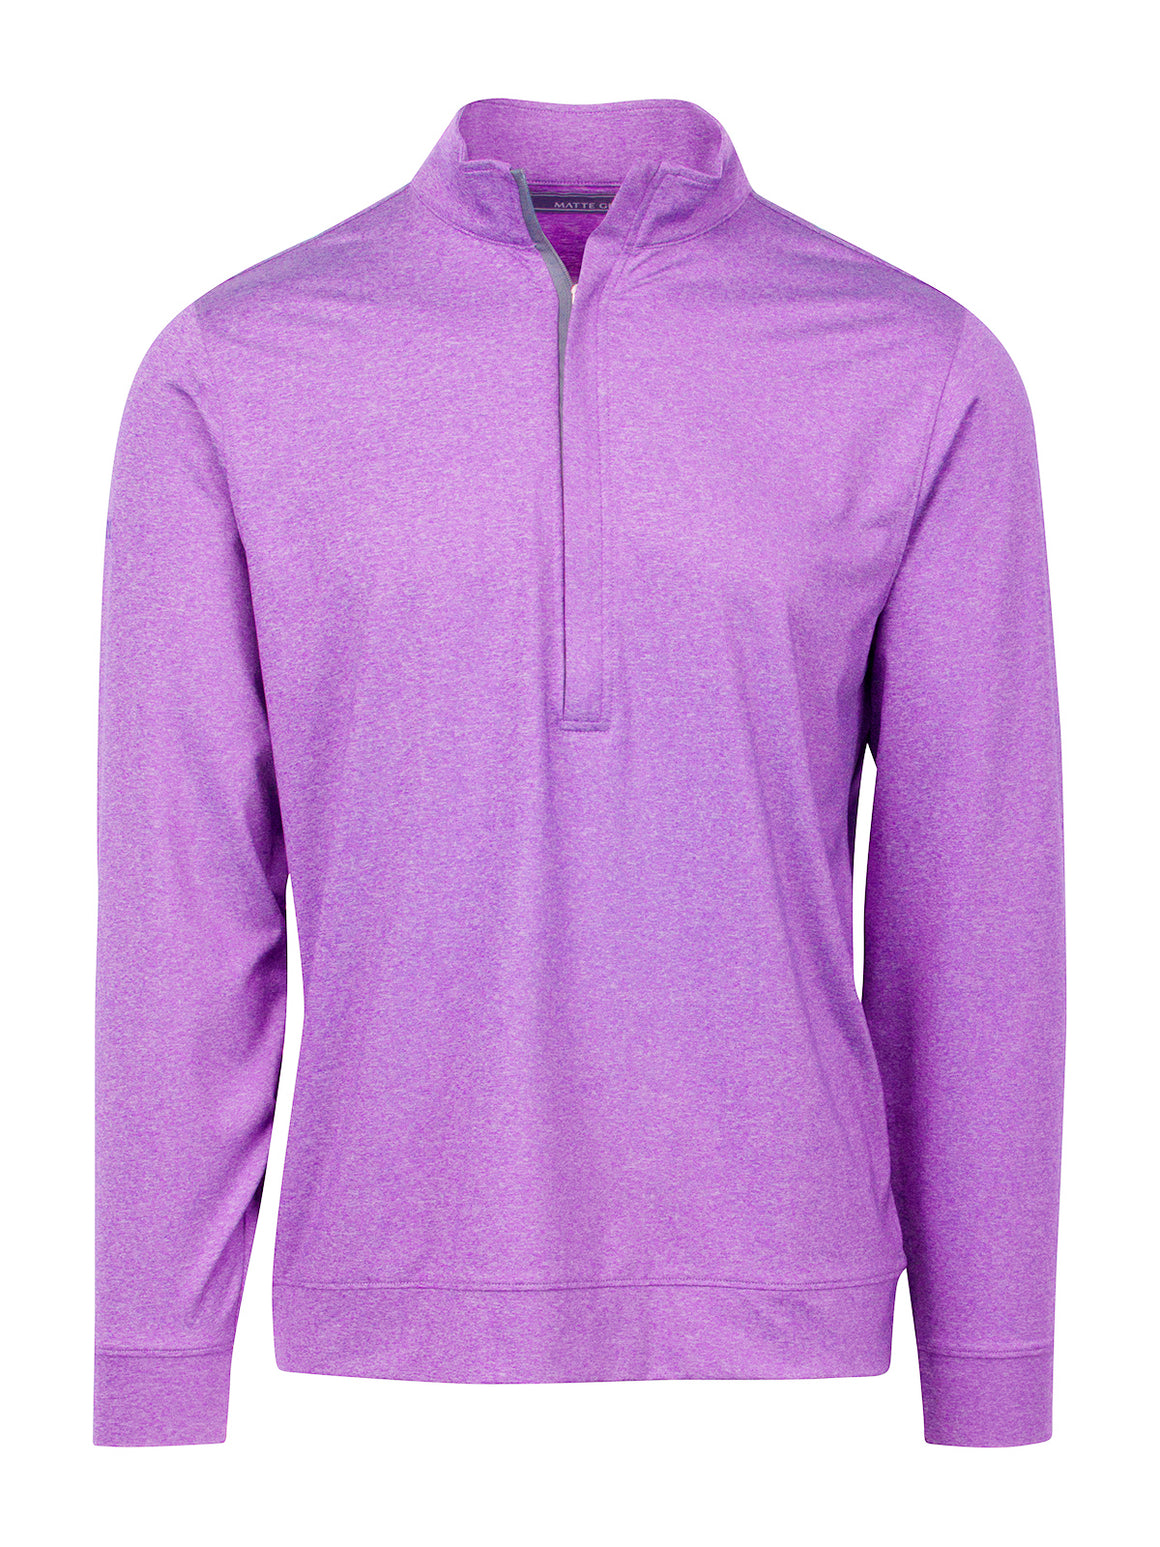 Hightower Half Zip - Iris Heather